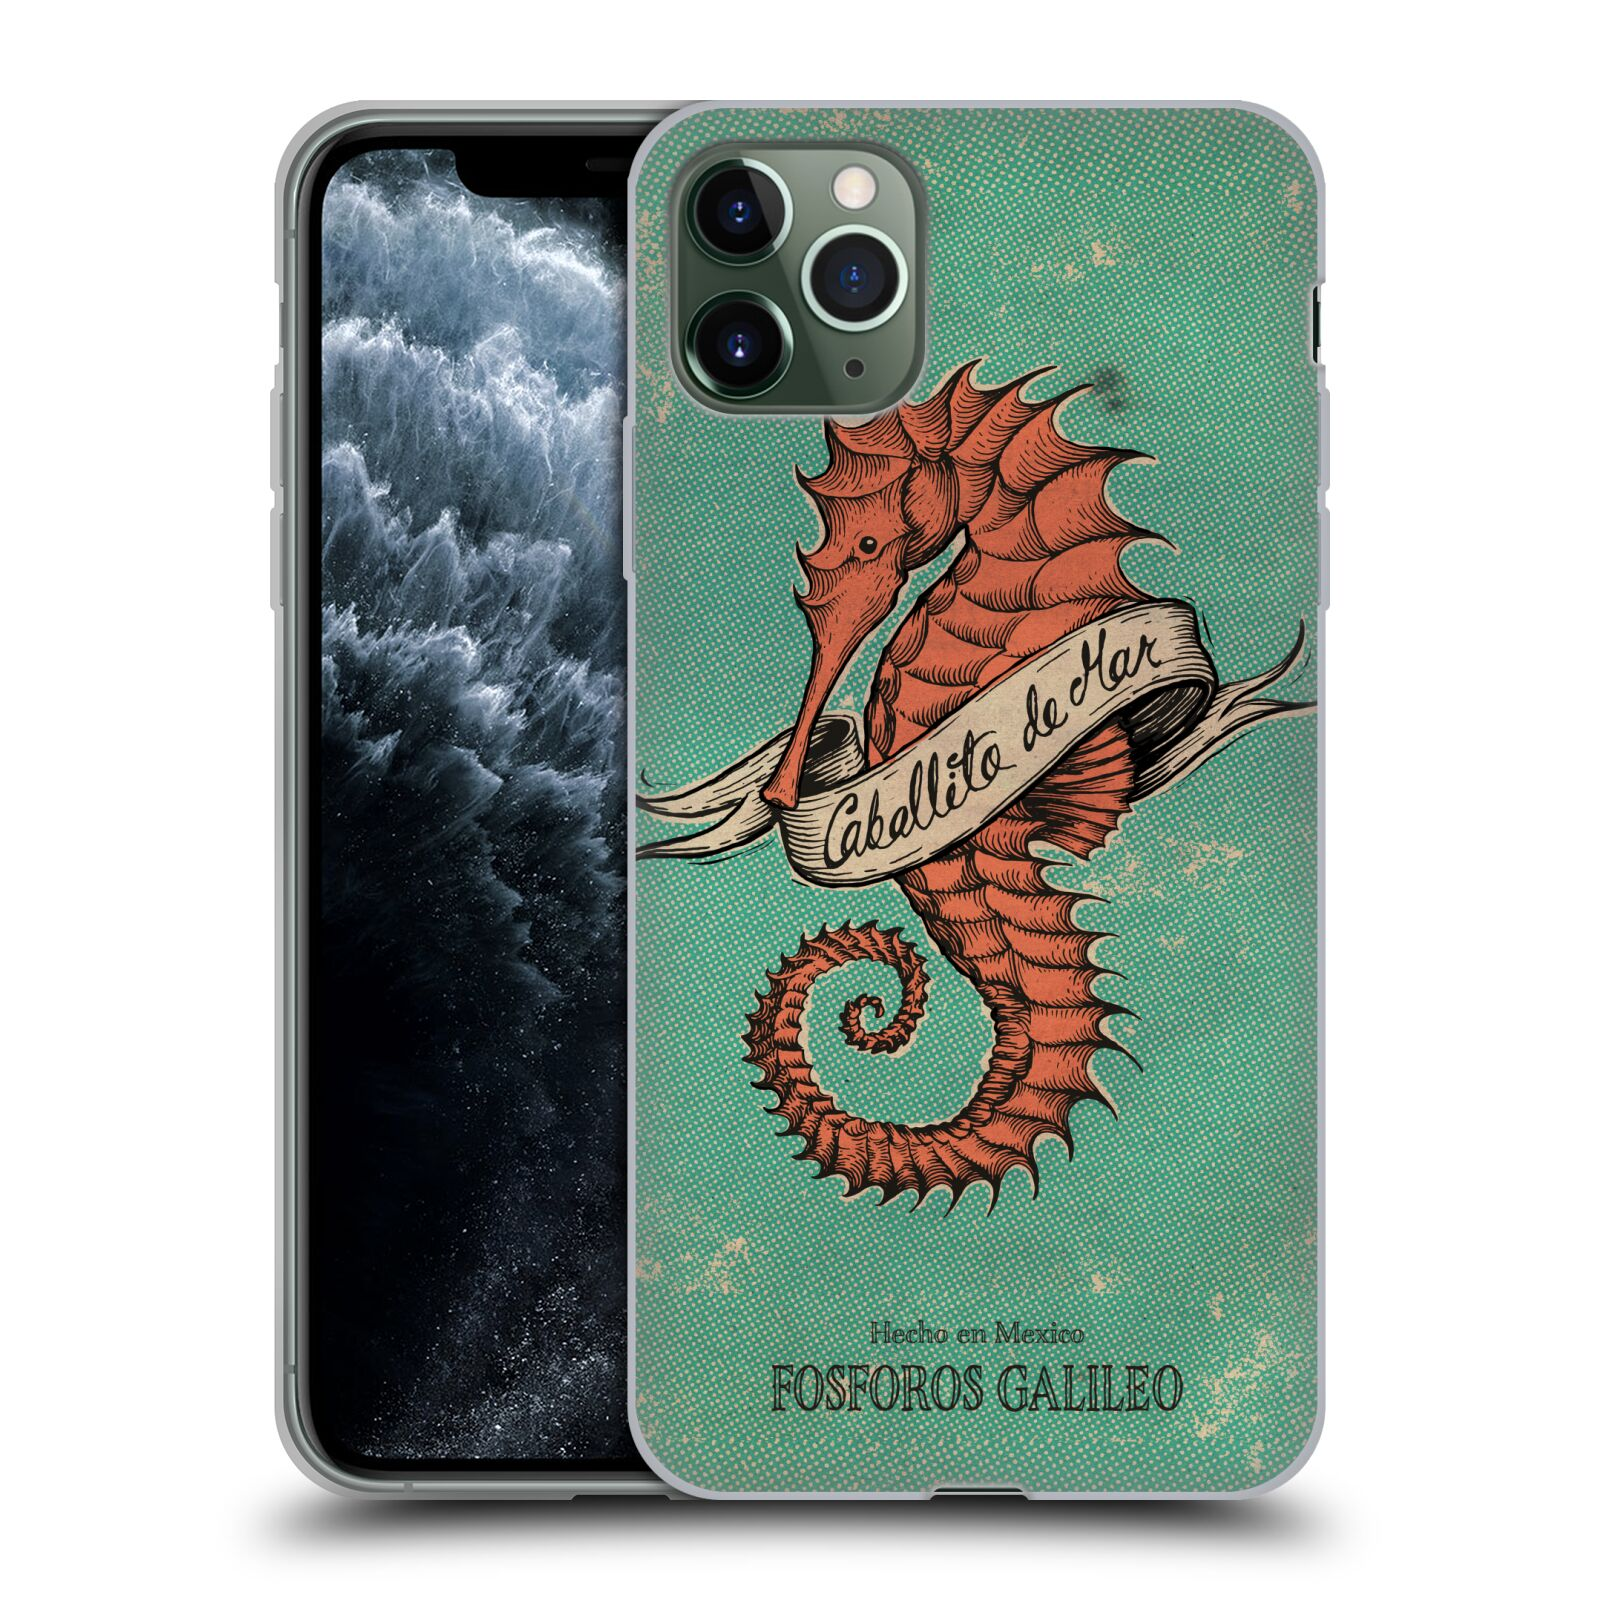 Official Fosforos Galileo Diseños Caballito De Mar Gel Case for Apple iPhone 11 Pro Max